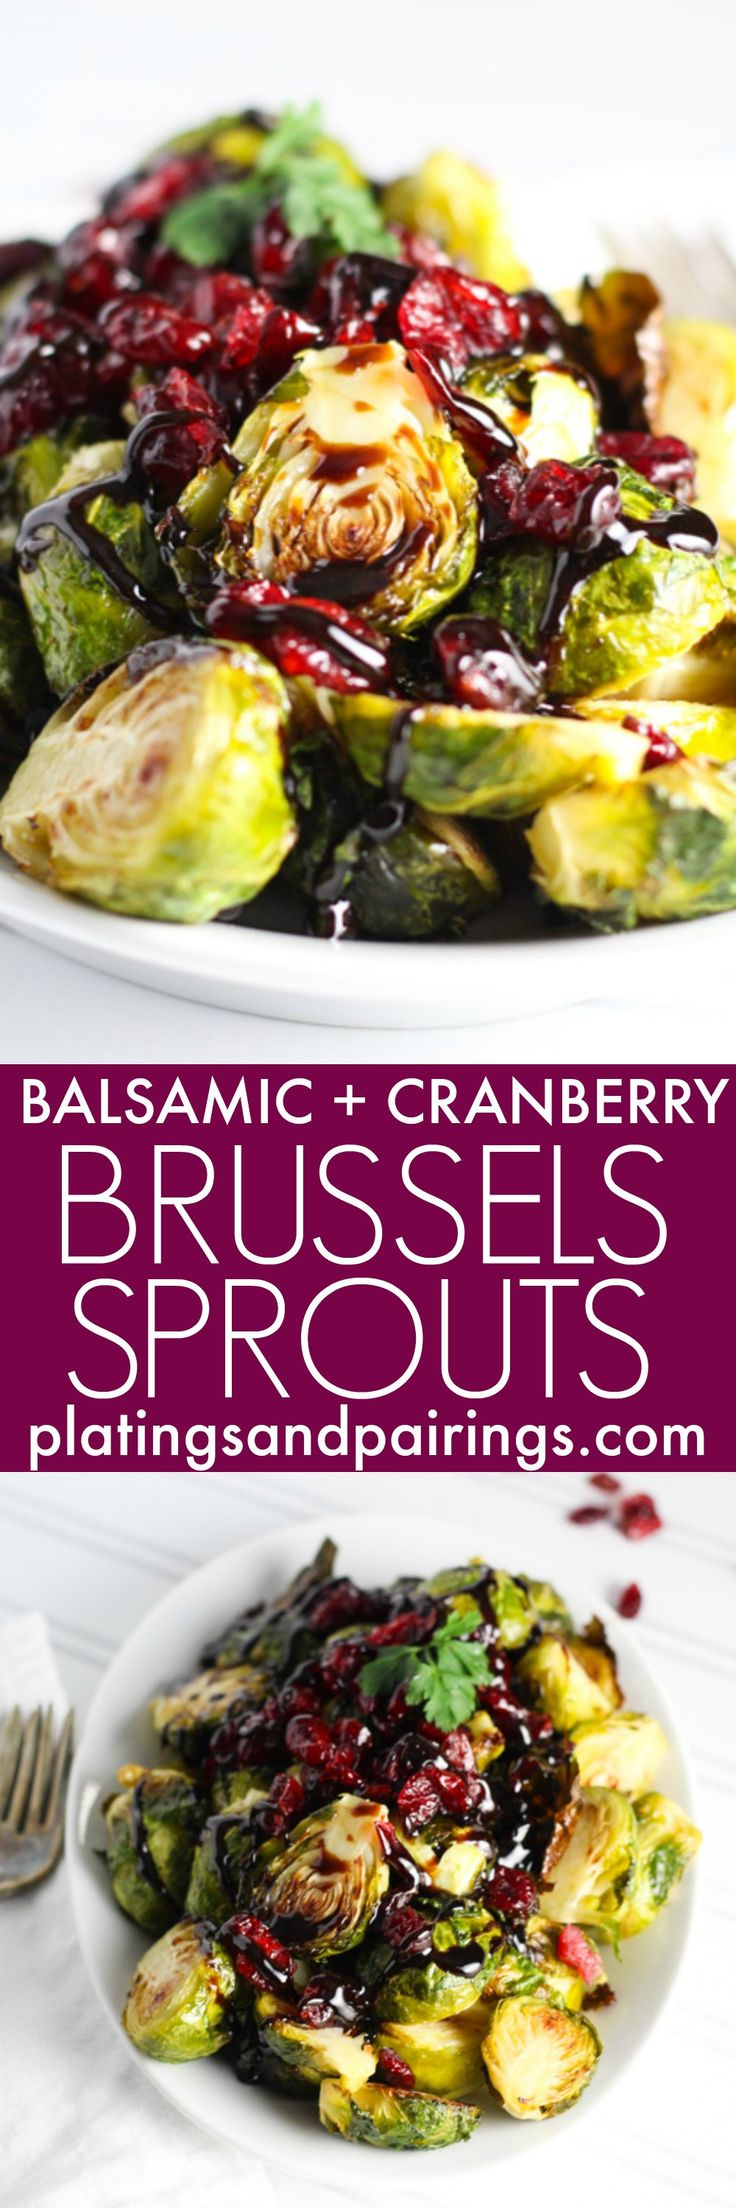 These Roasted Brussels Sprouts with Cranberries and Balsamic Reduction make a simple and elegant side dish that both kids and adults love!